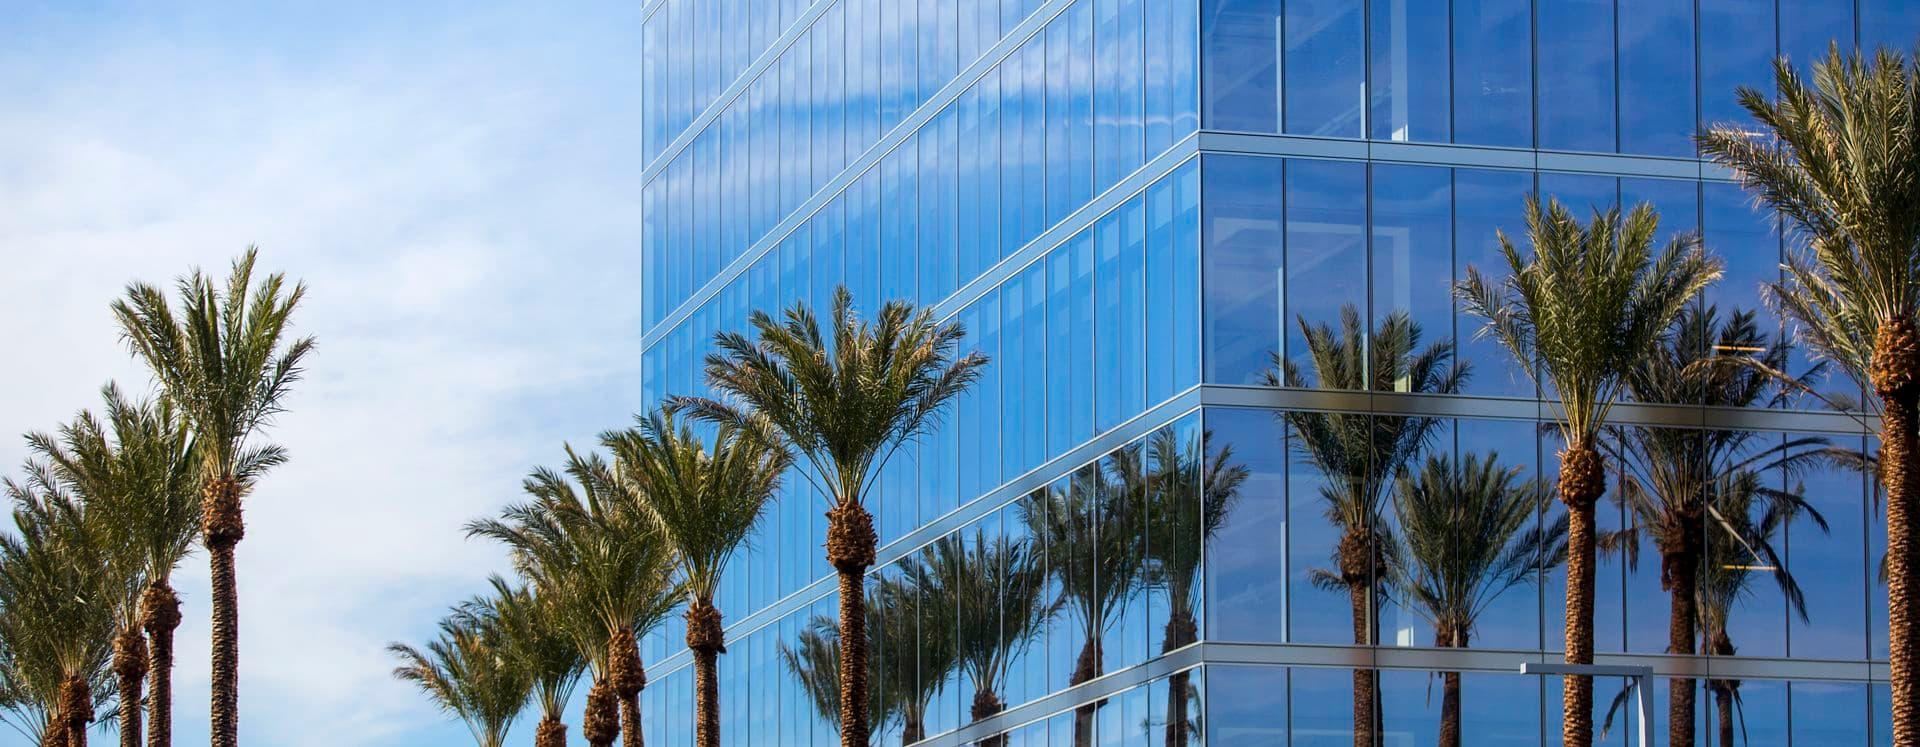 Exterior views of 200 Spectrum Center office building in Irvine Spectrum. Lamb 2016.